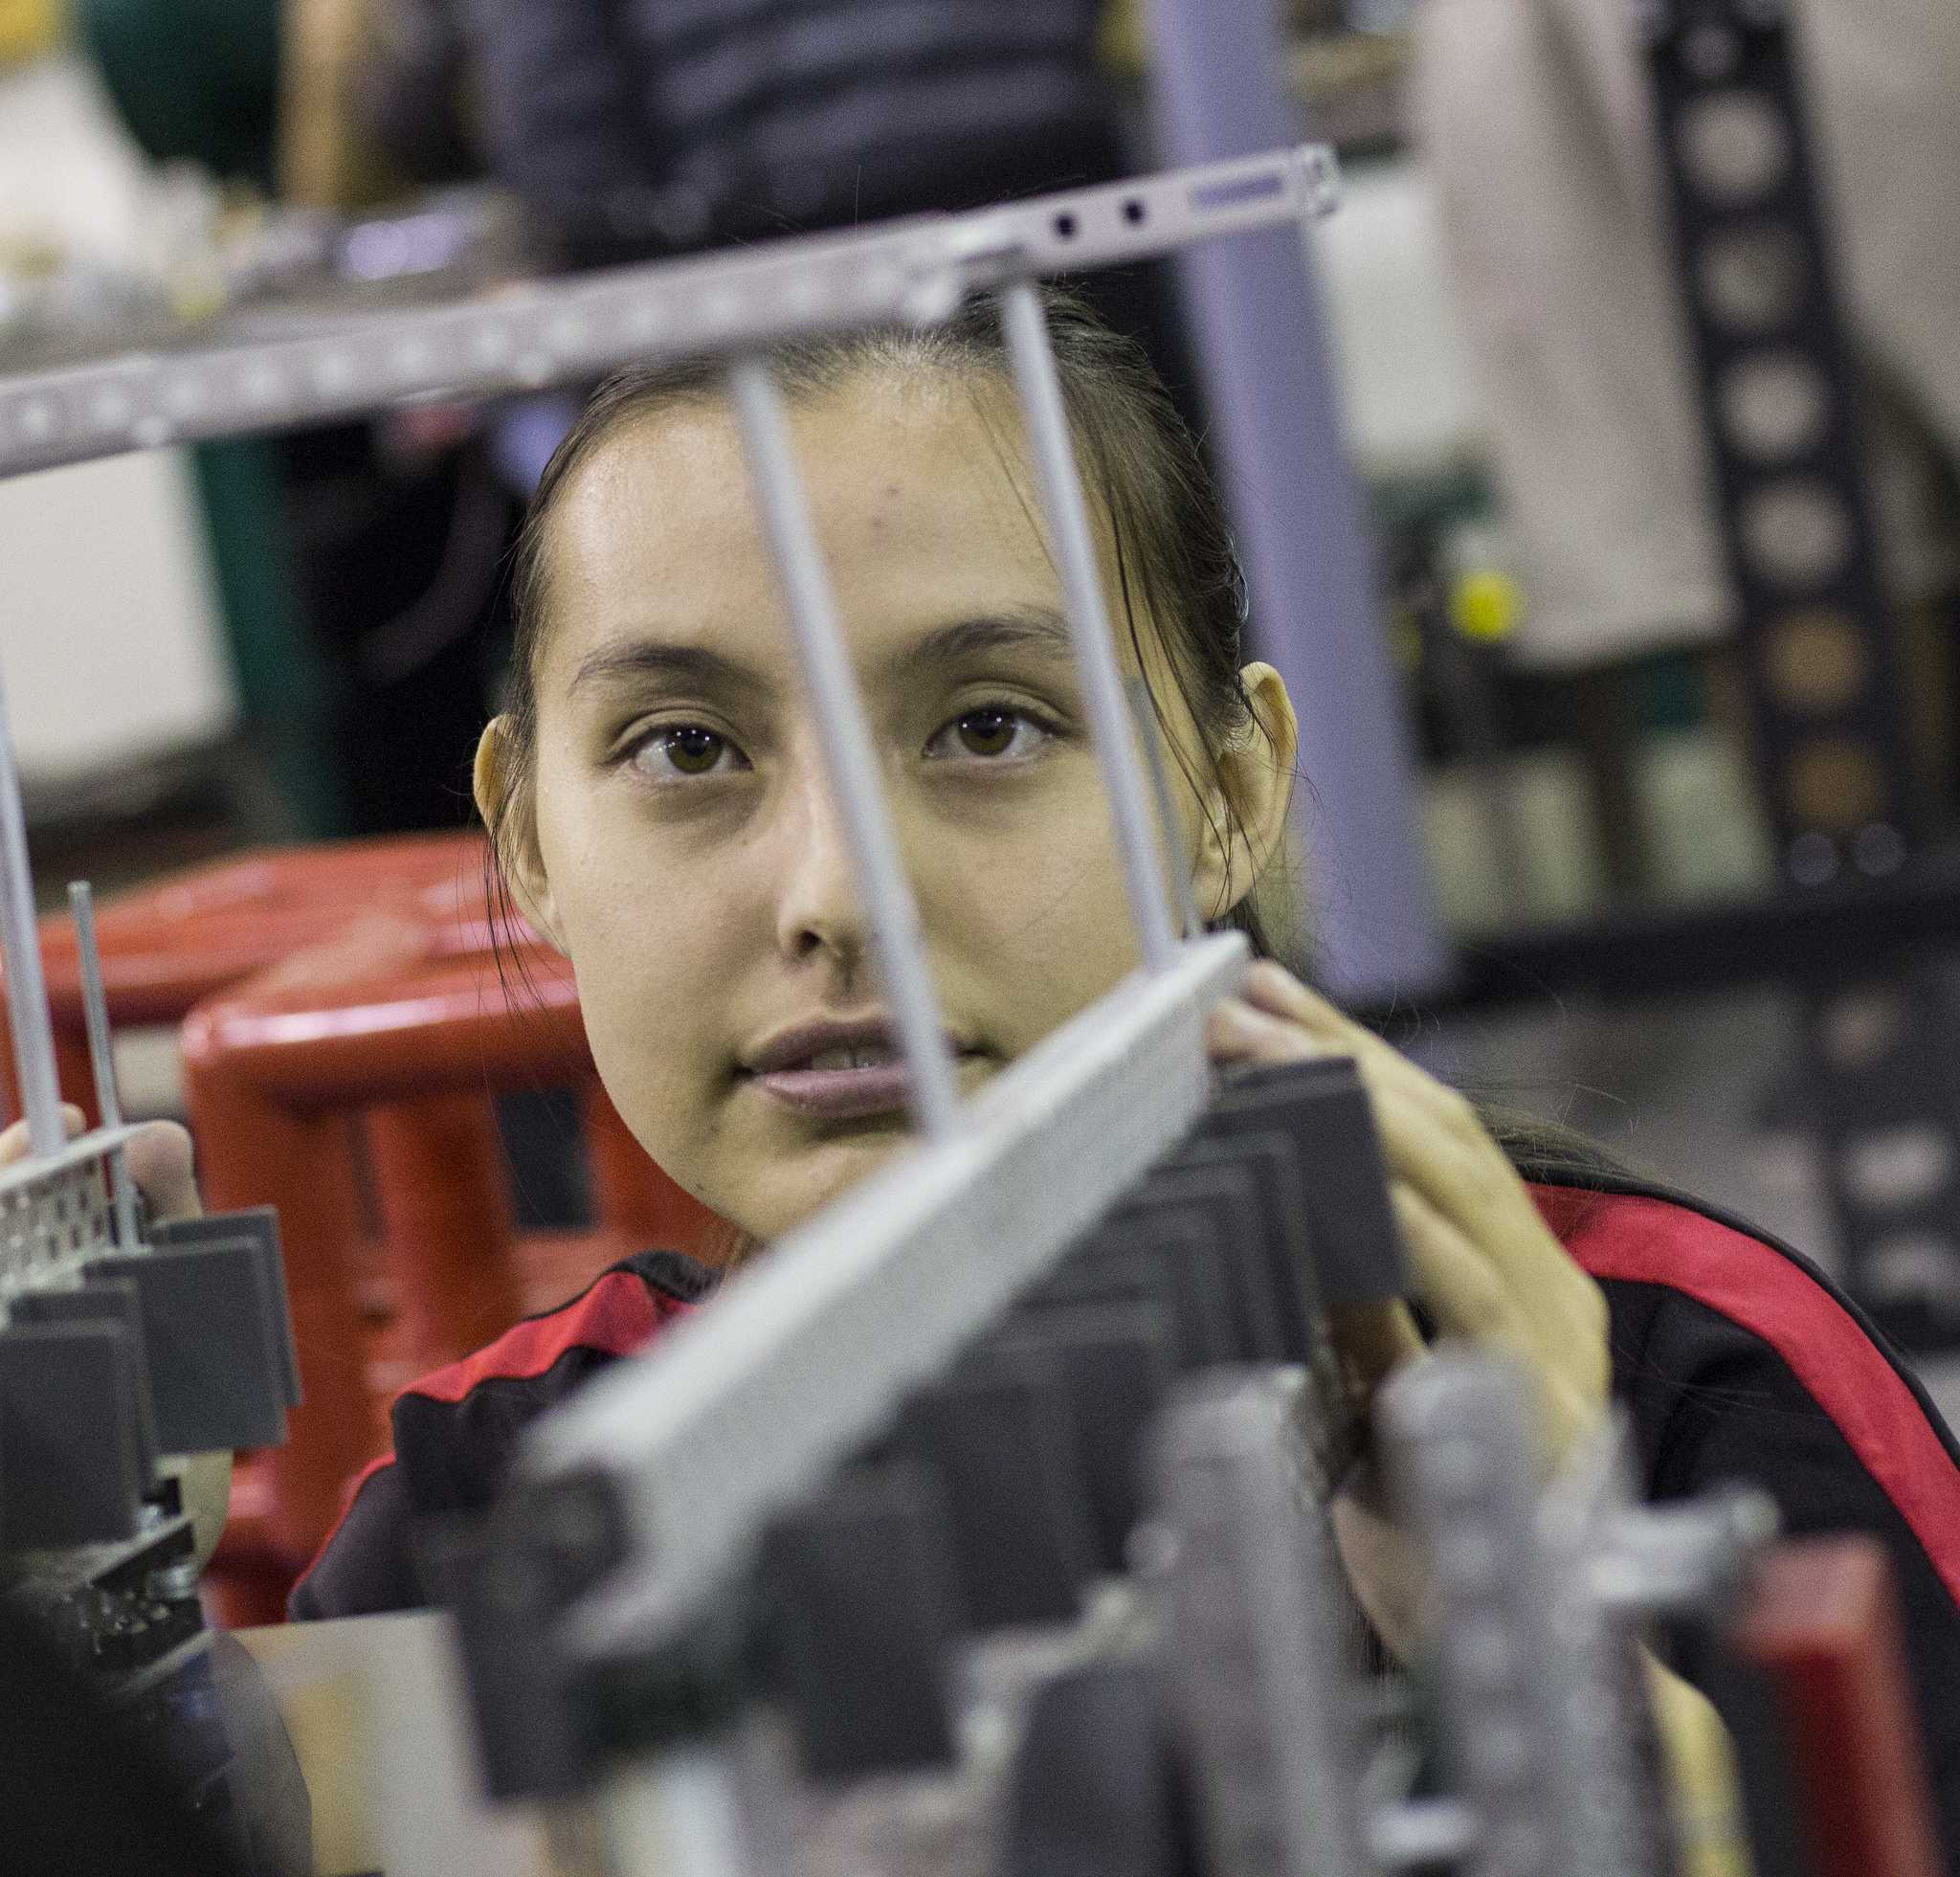 Erin Kubo, 19, freshman mechnical engineering major is one of the drivers of the robots in VEX Skyrise competitions for the Matabots. Photo credit: Trevor Stamp